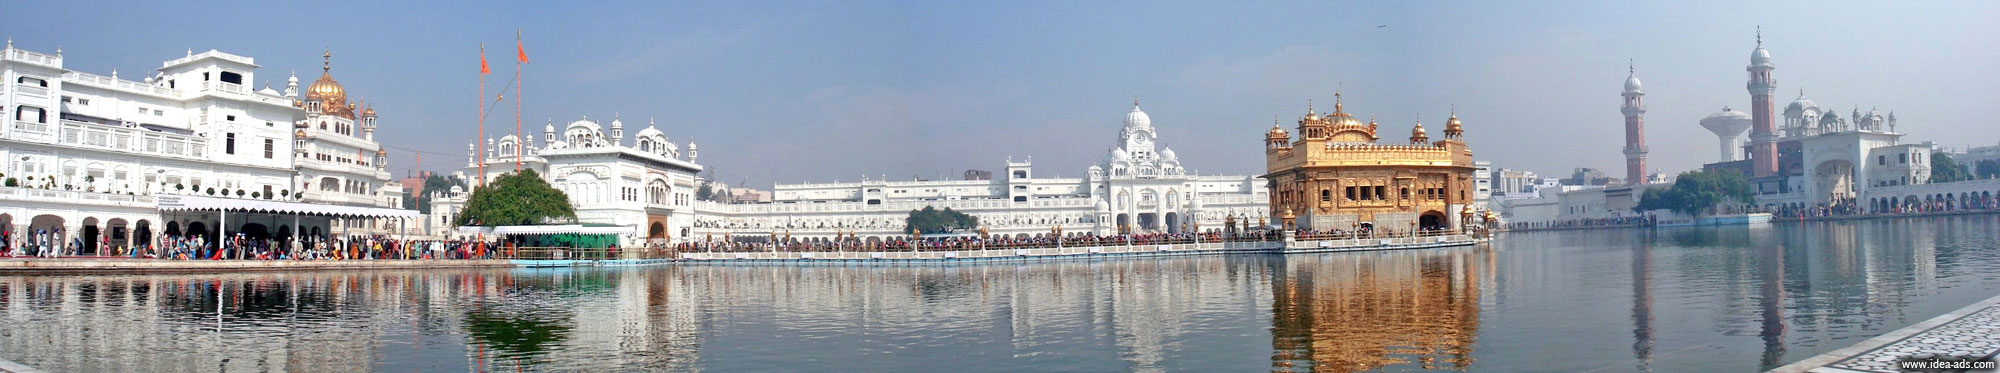 Golden Temple, Amritsar, Sri Harmandir Sahib, Darbar Sahib, Hari Mandir, Famous Temples of India